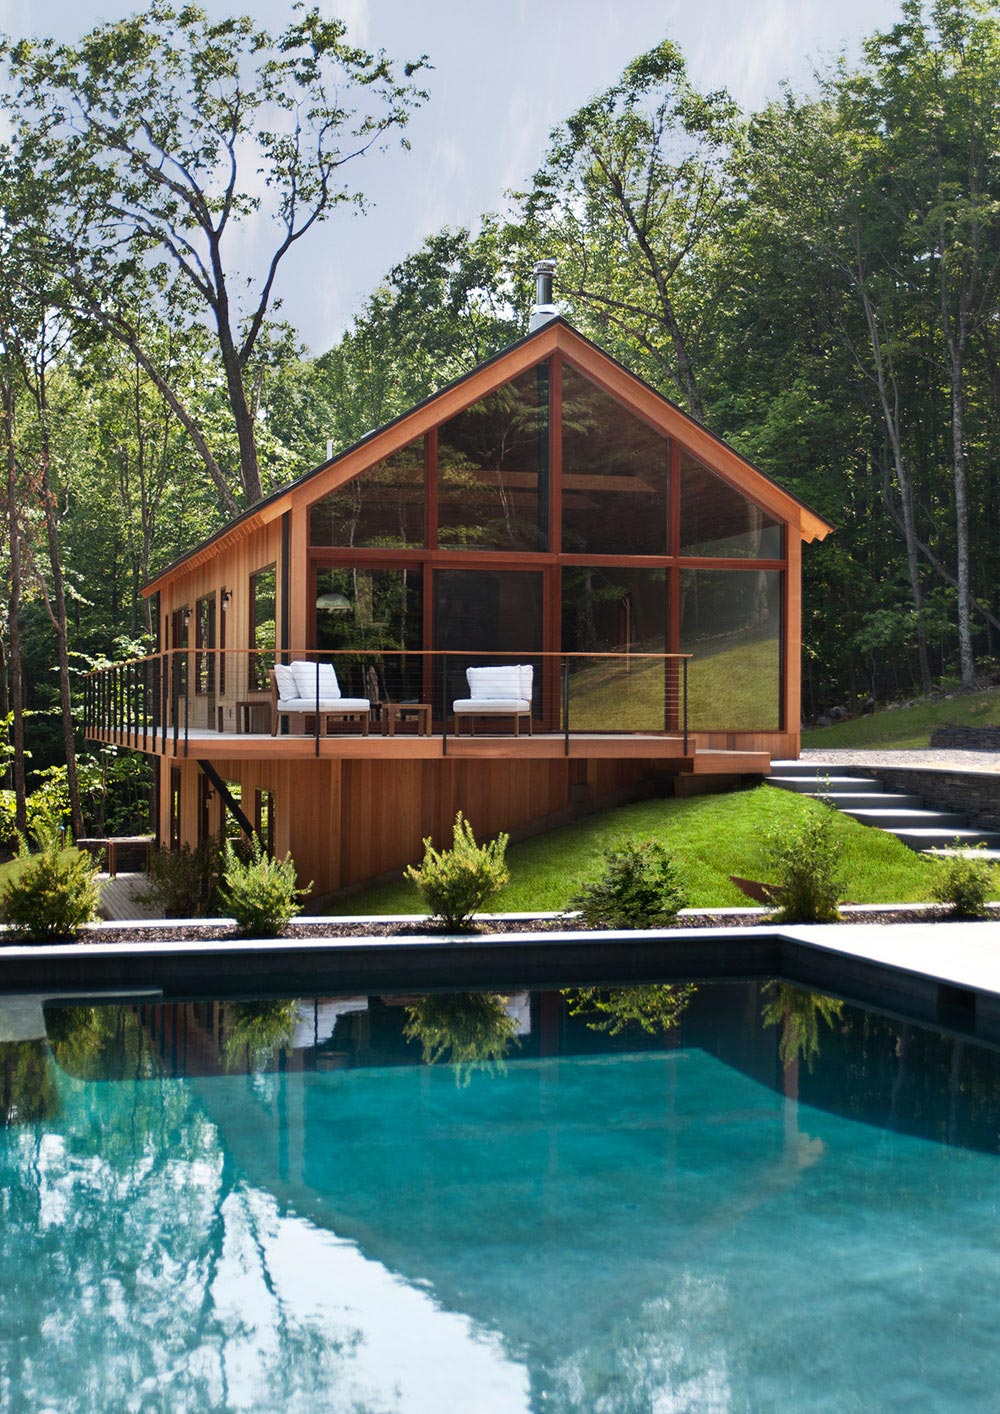 Wood and Glass House Embracing Nature in Kerhonkson, New York